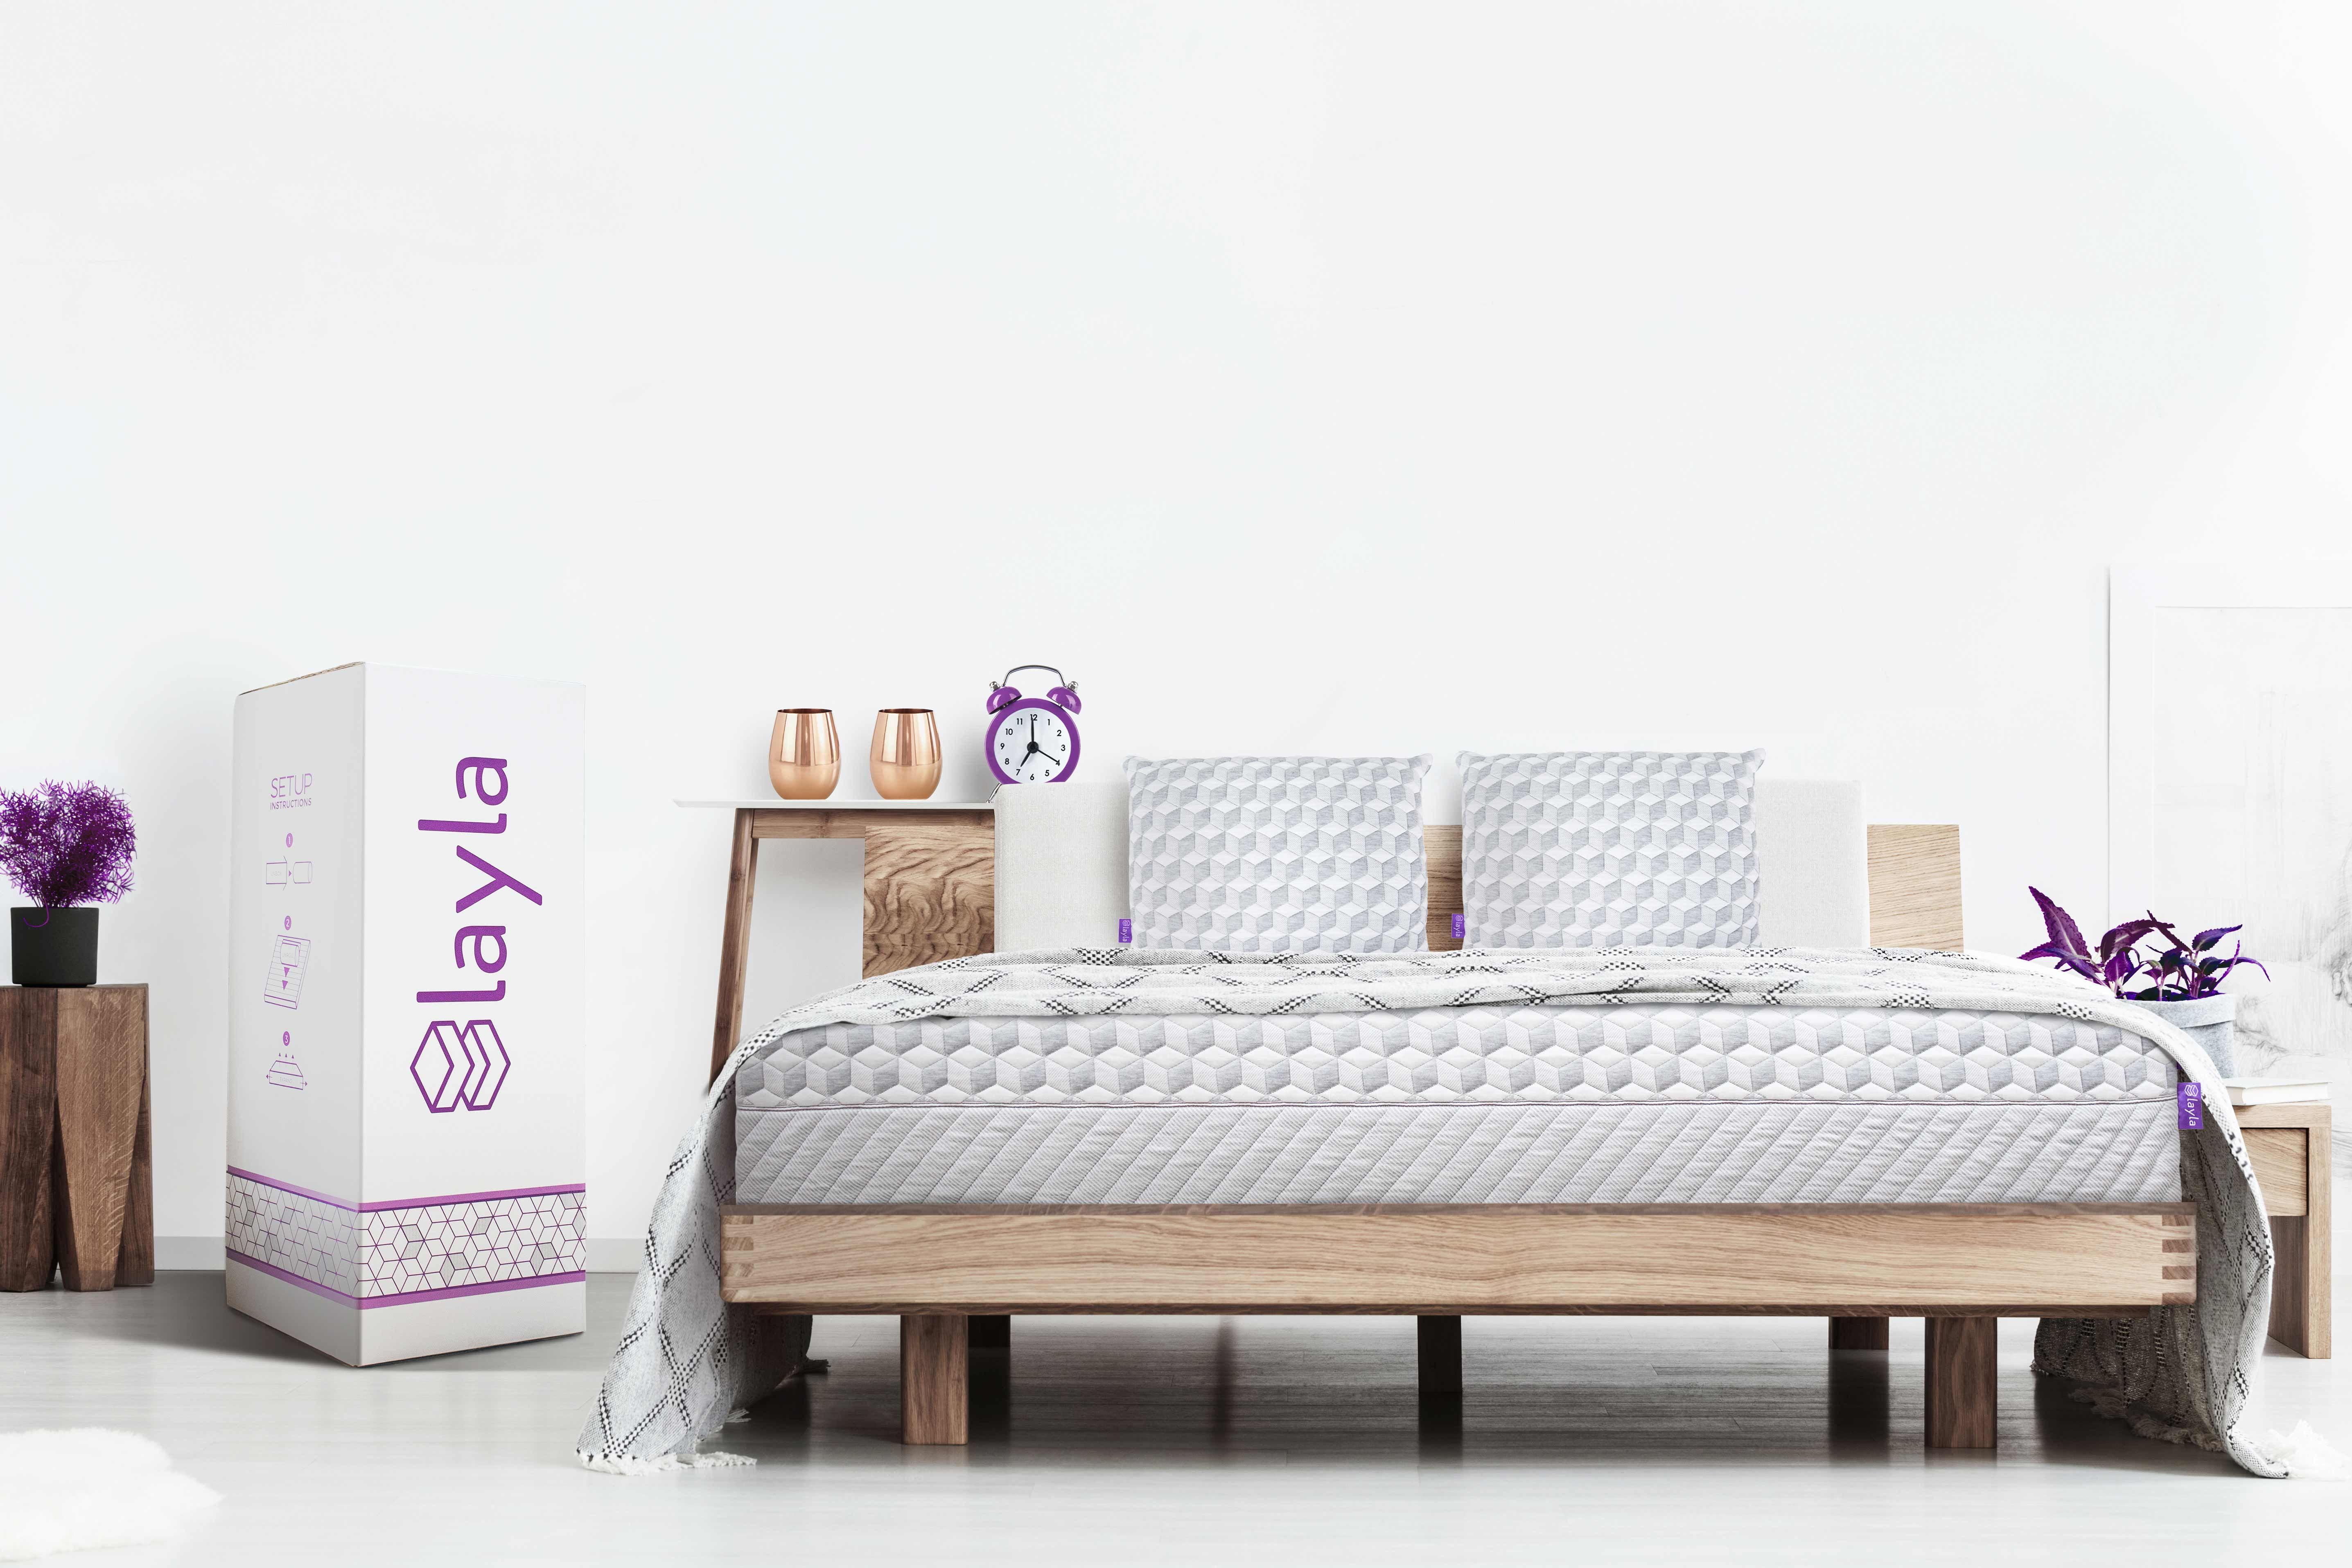 This Copper Infused Mattress Is The Most Comfortable Mattress I